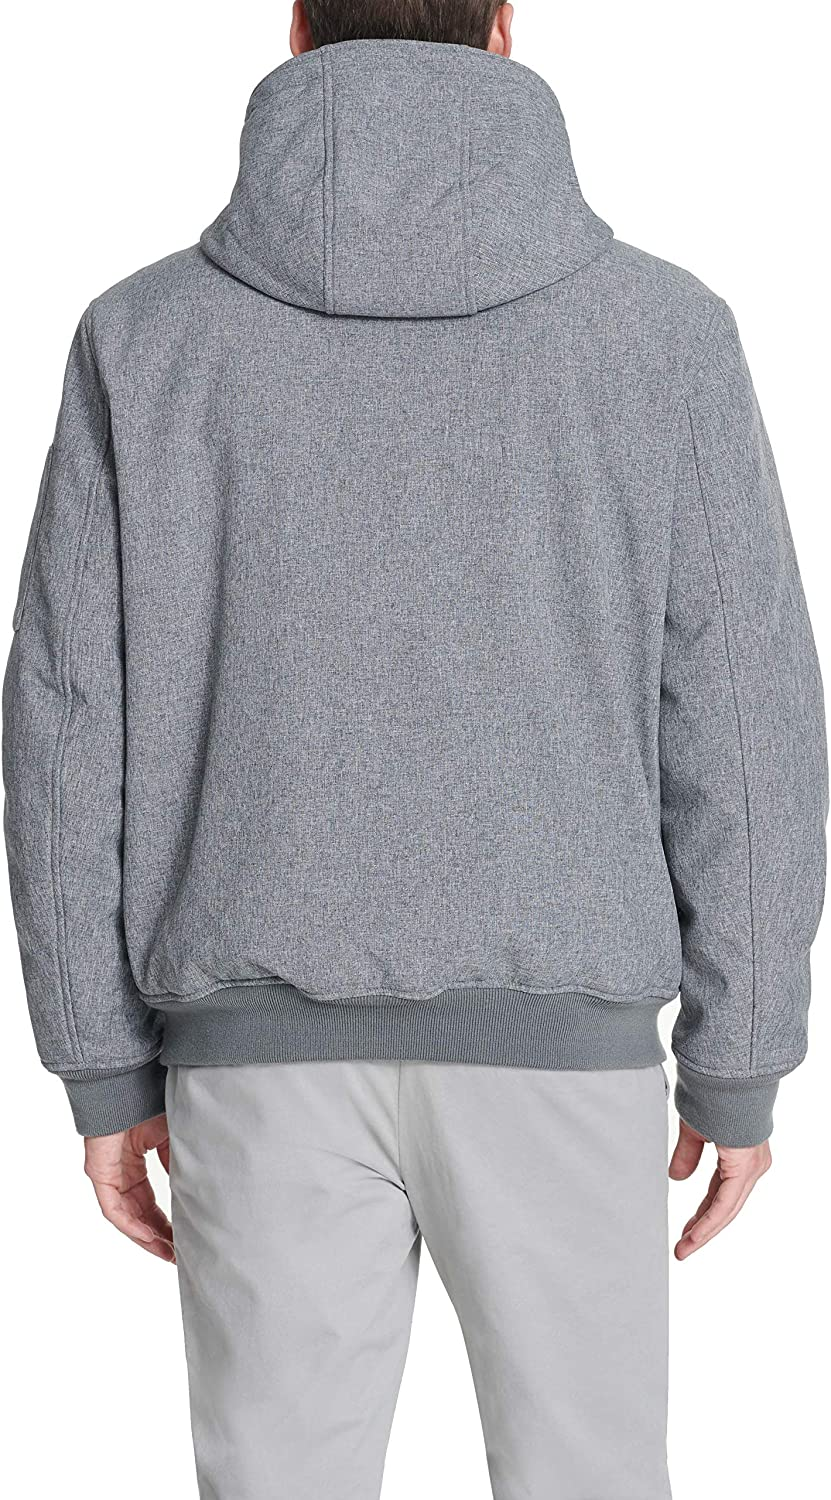 Tommy Hilfiger Mens Soft Shell Fashion Bomber with Contrast Bib and Hood